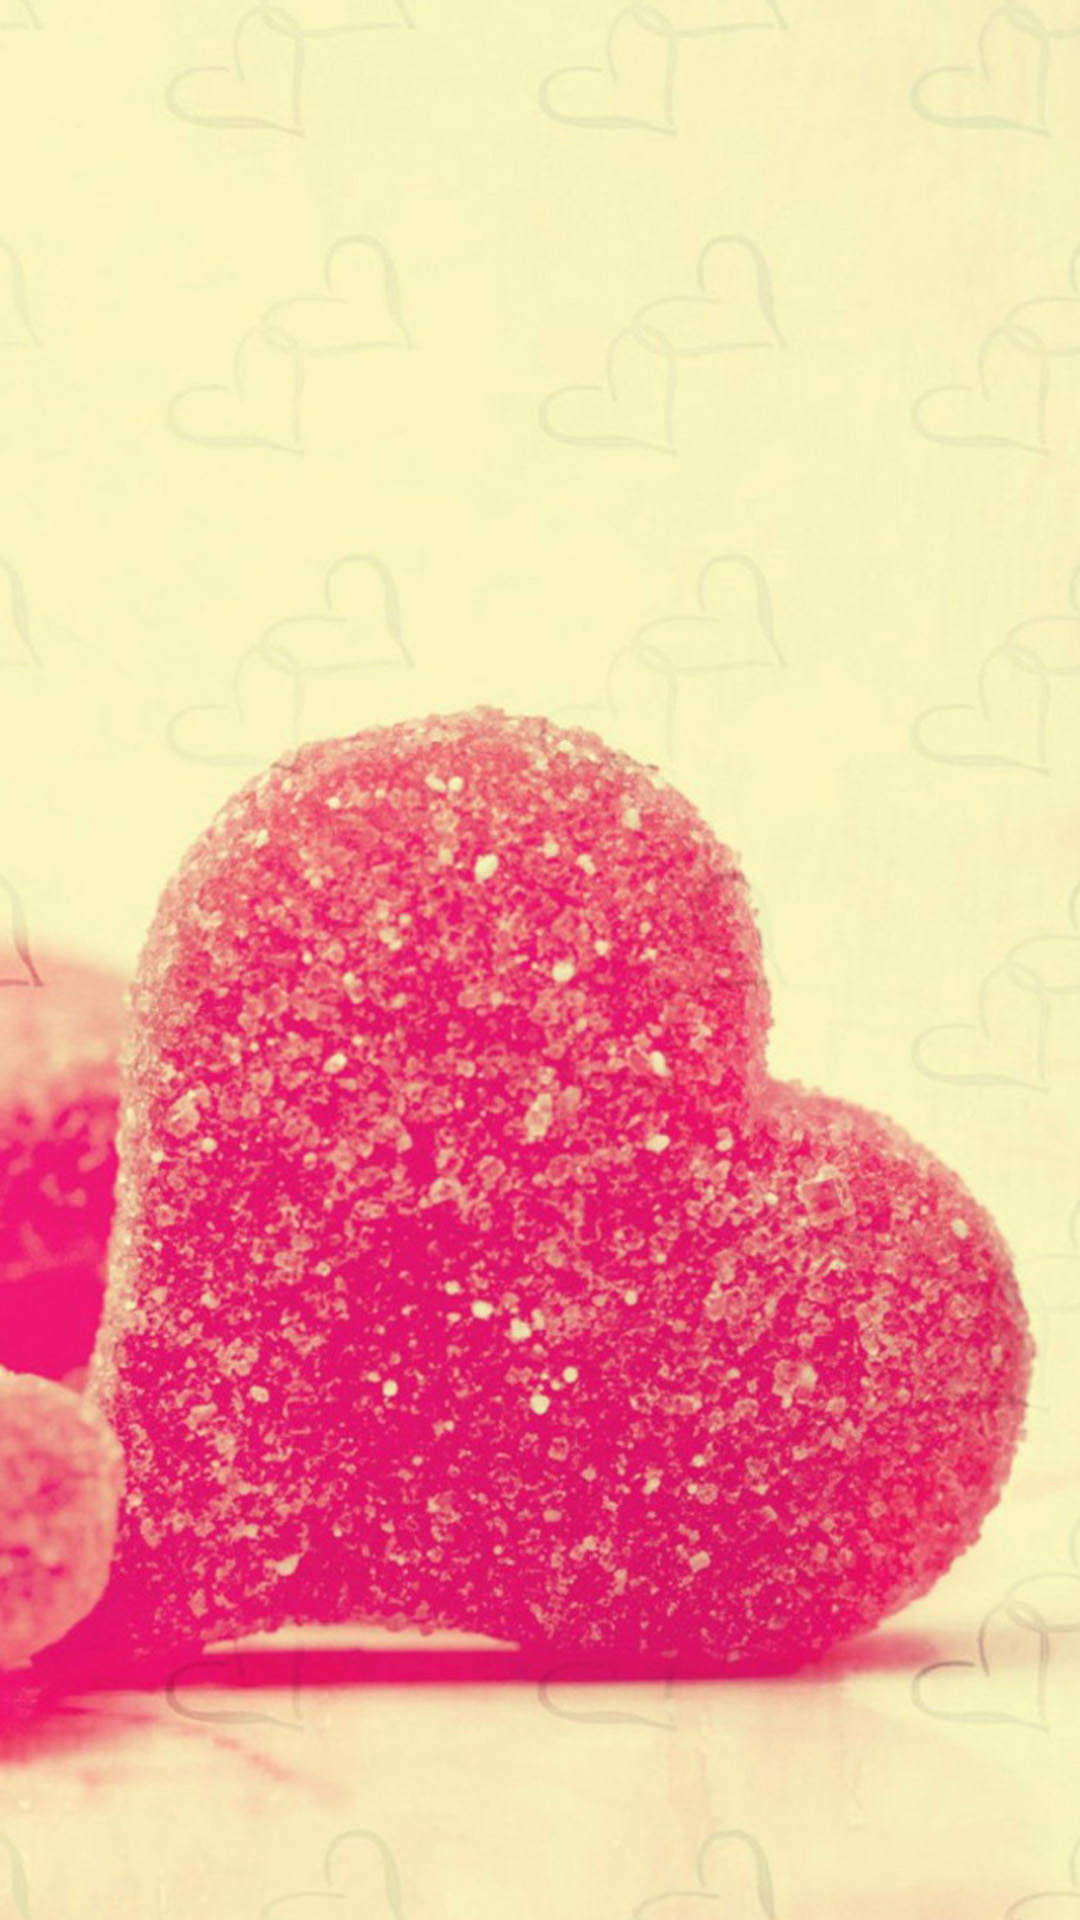 Sweet Heart Candy Android wallpaper